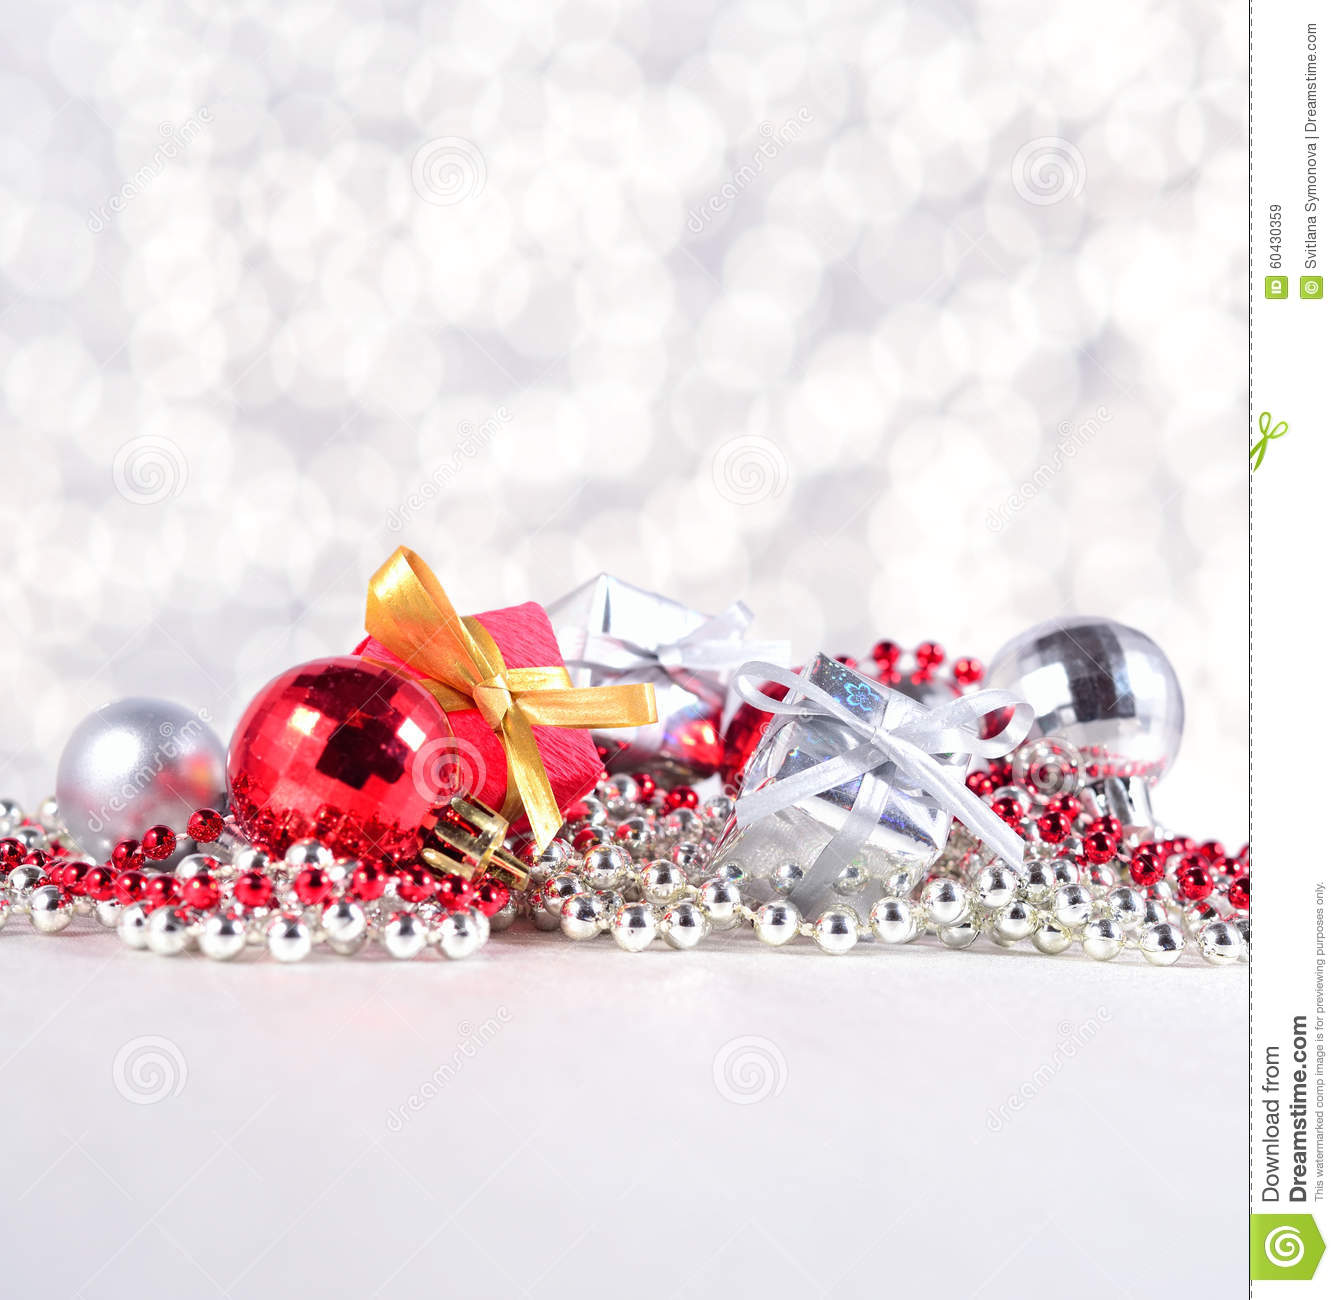 Silver and red christmas decorations - Silver And Red Christmas Decorations Stock Photo